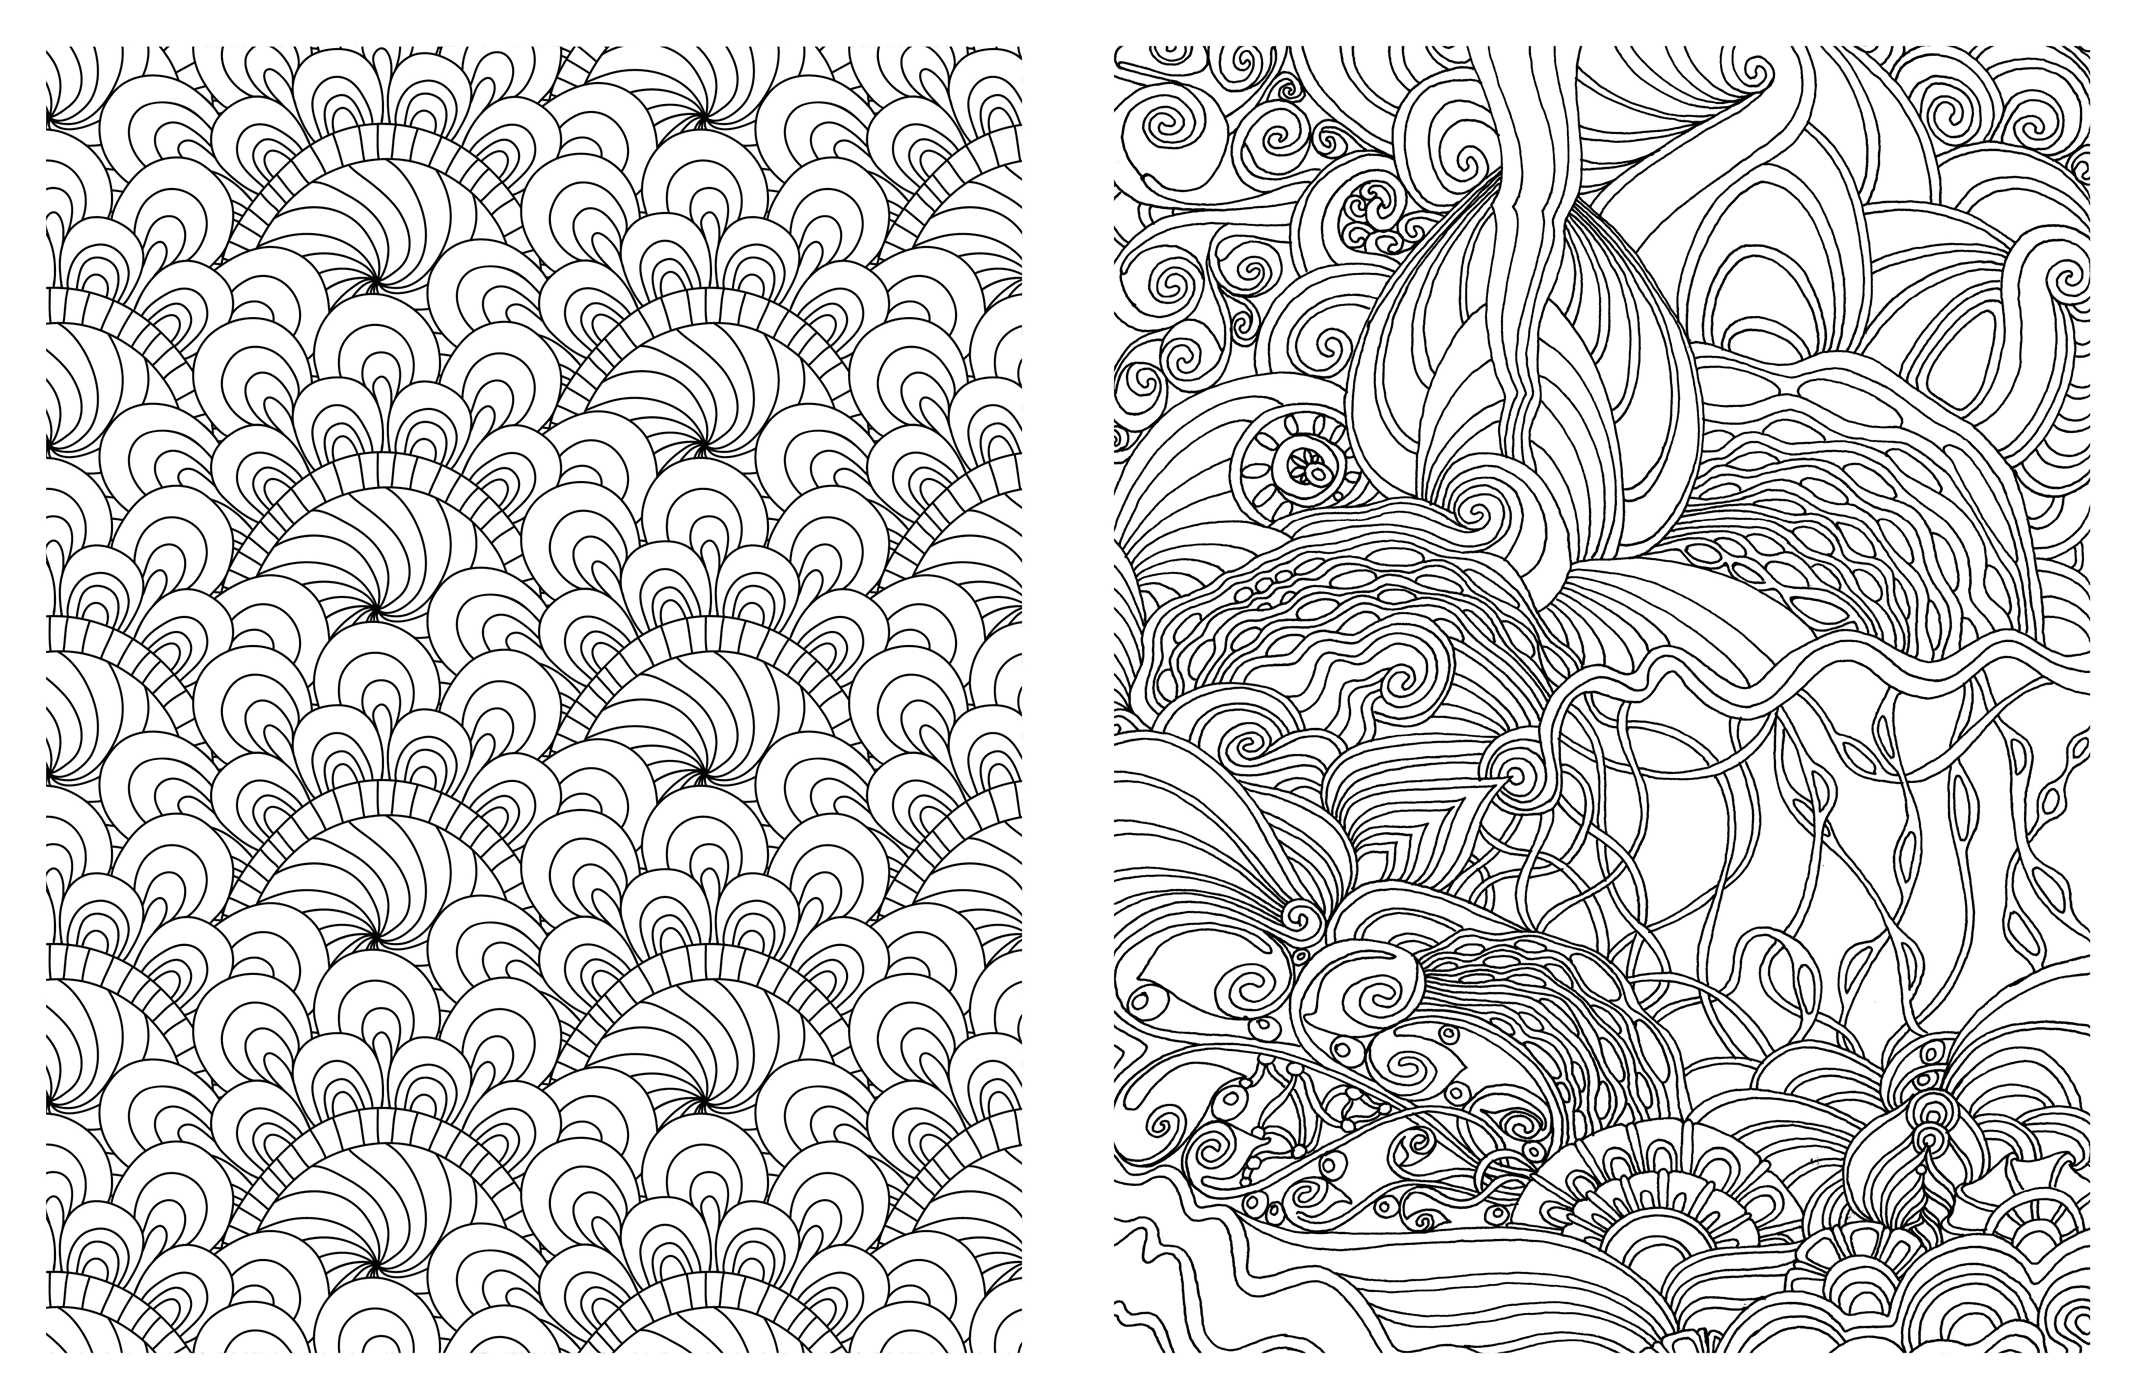 amazoncom posh adult coloring book soothing designs for fun relaxation posh coloring books 0050837348899 andrews mcmeel publishing books - Coloring Books